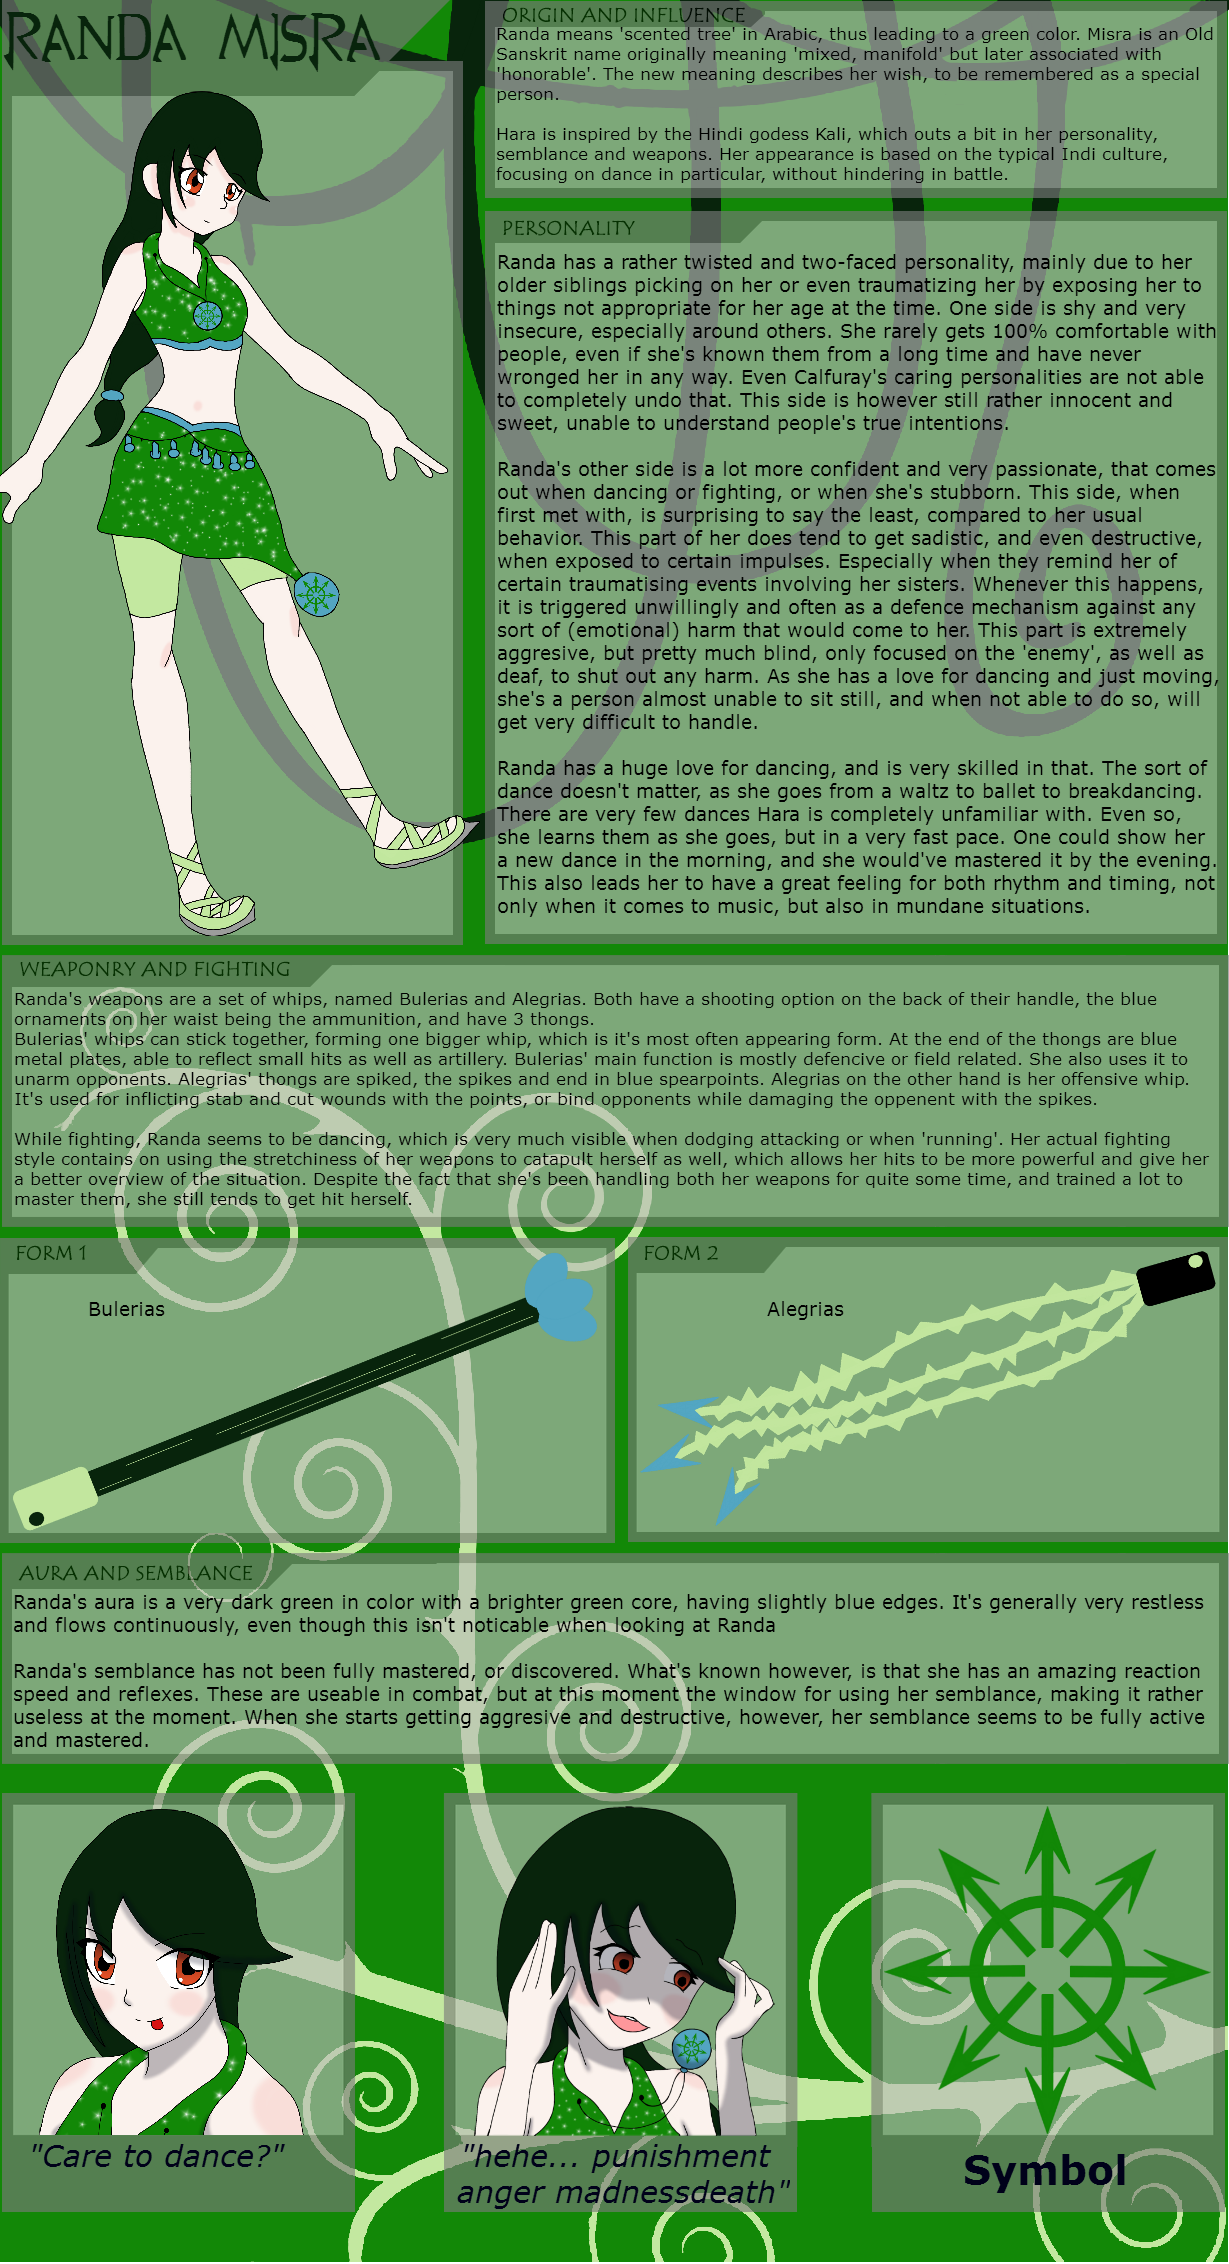 CRBN - Randa Misra bio by Samulady on DeviantArt